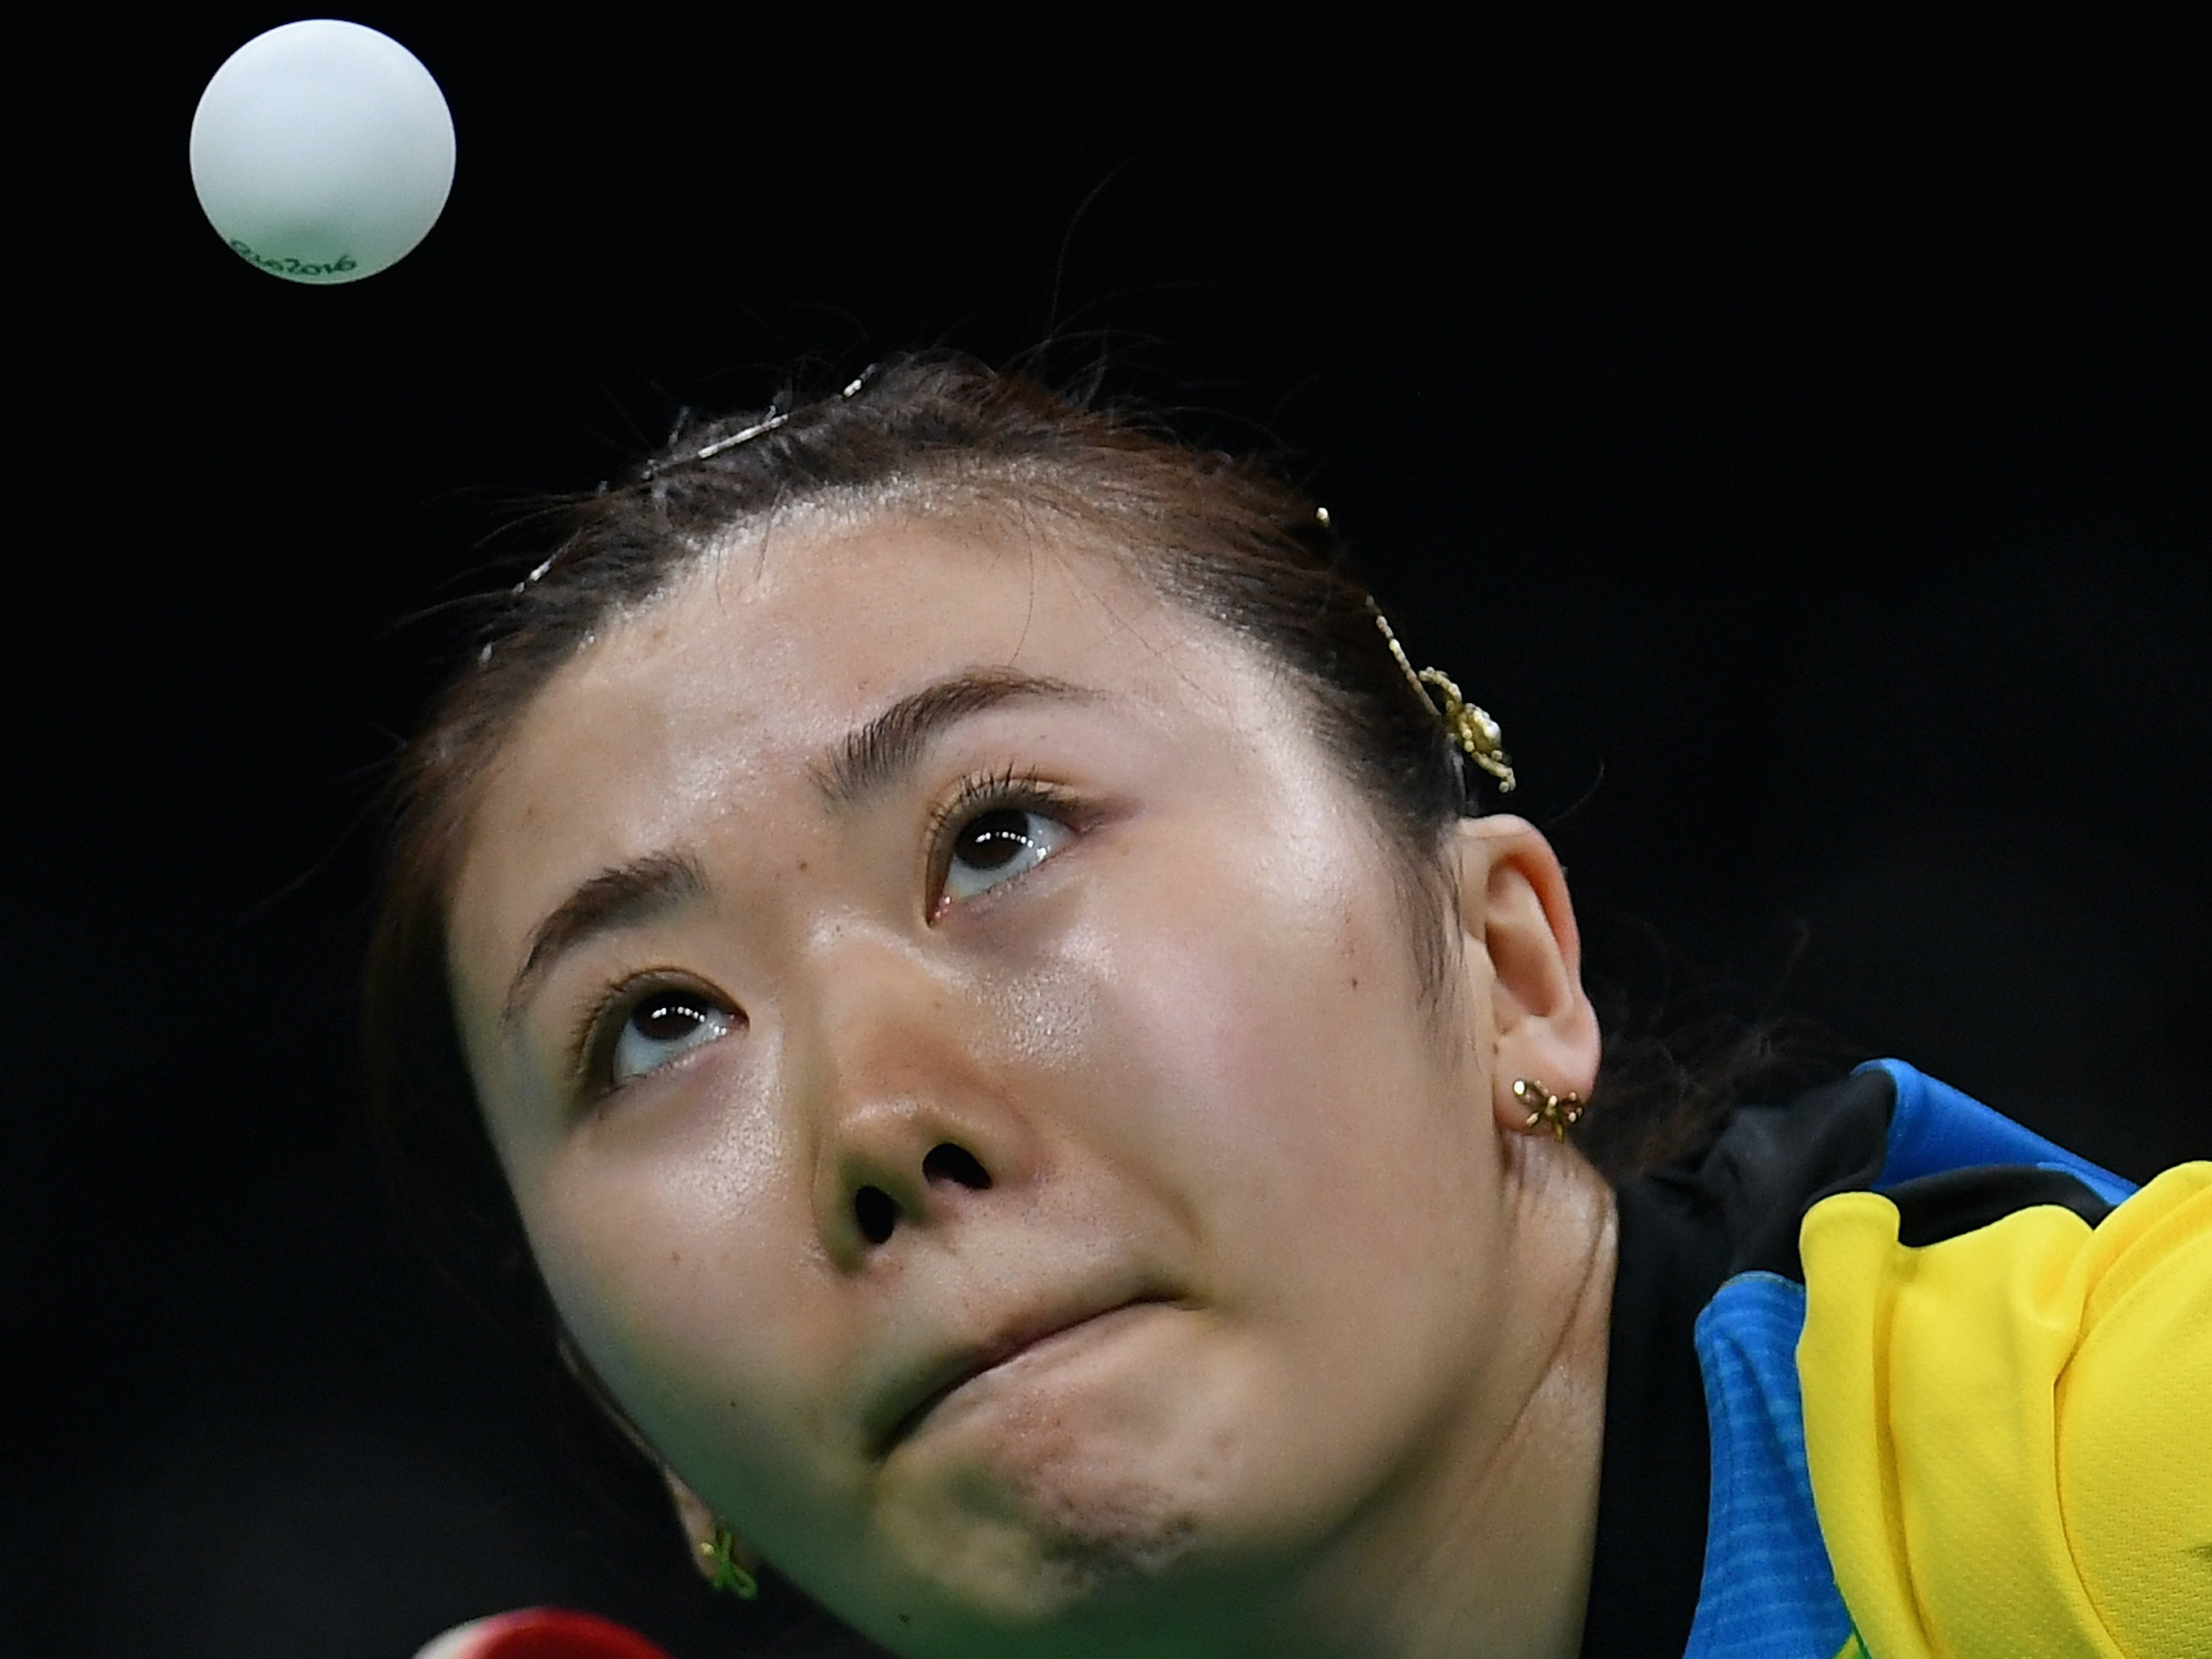 RIO DE JANEIRO, BRAZIL - AUGUST 10:  Ai Fukuhara of Japan in action during her Womens Table Tennis Singles Semi Final match against  Xiaoxia Li of China at Rio Centro on August 10, 2016 in Rio de Janeiro, Brazil.  (Photo by Laurence Griffiths/Getty Images)